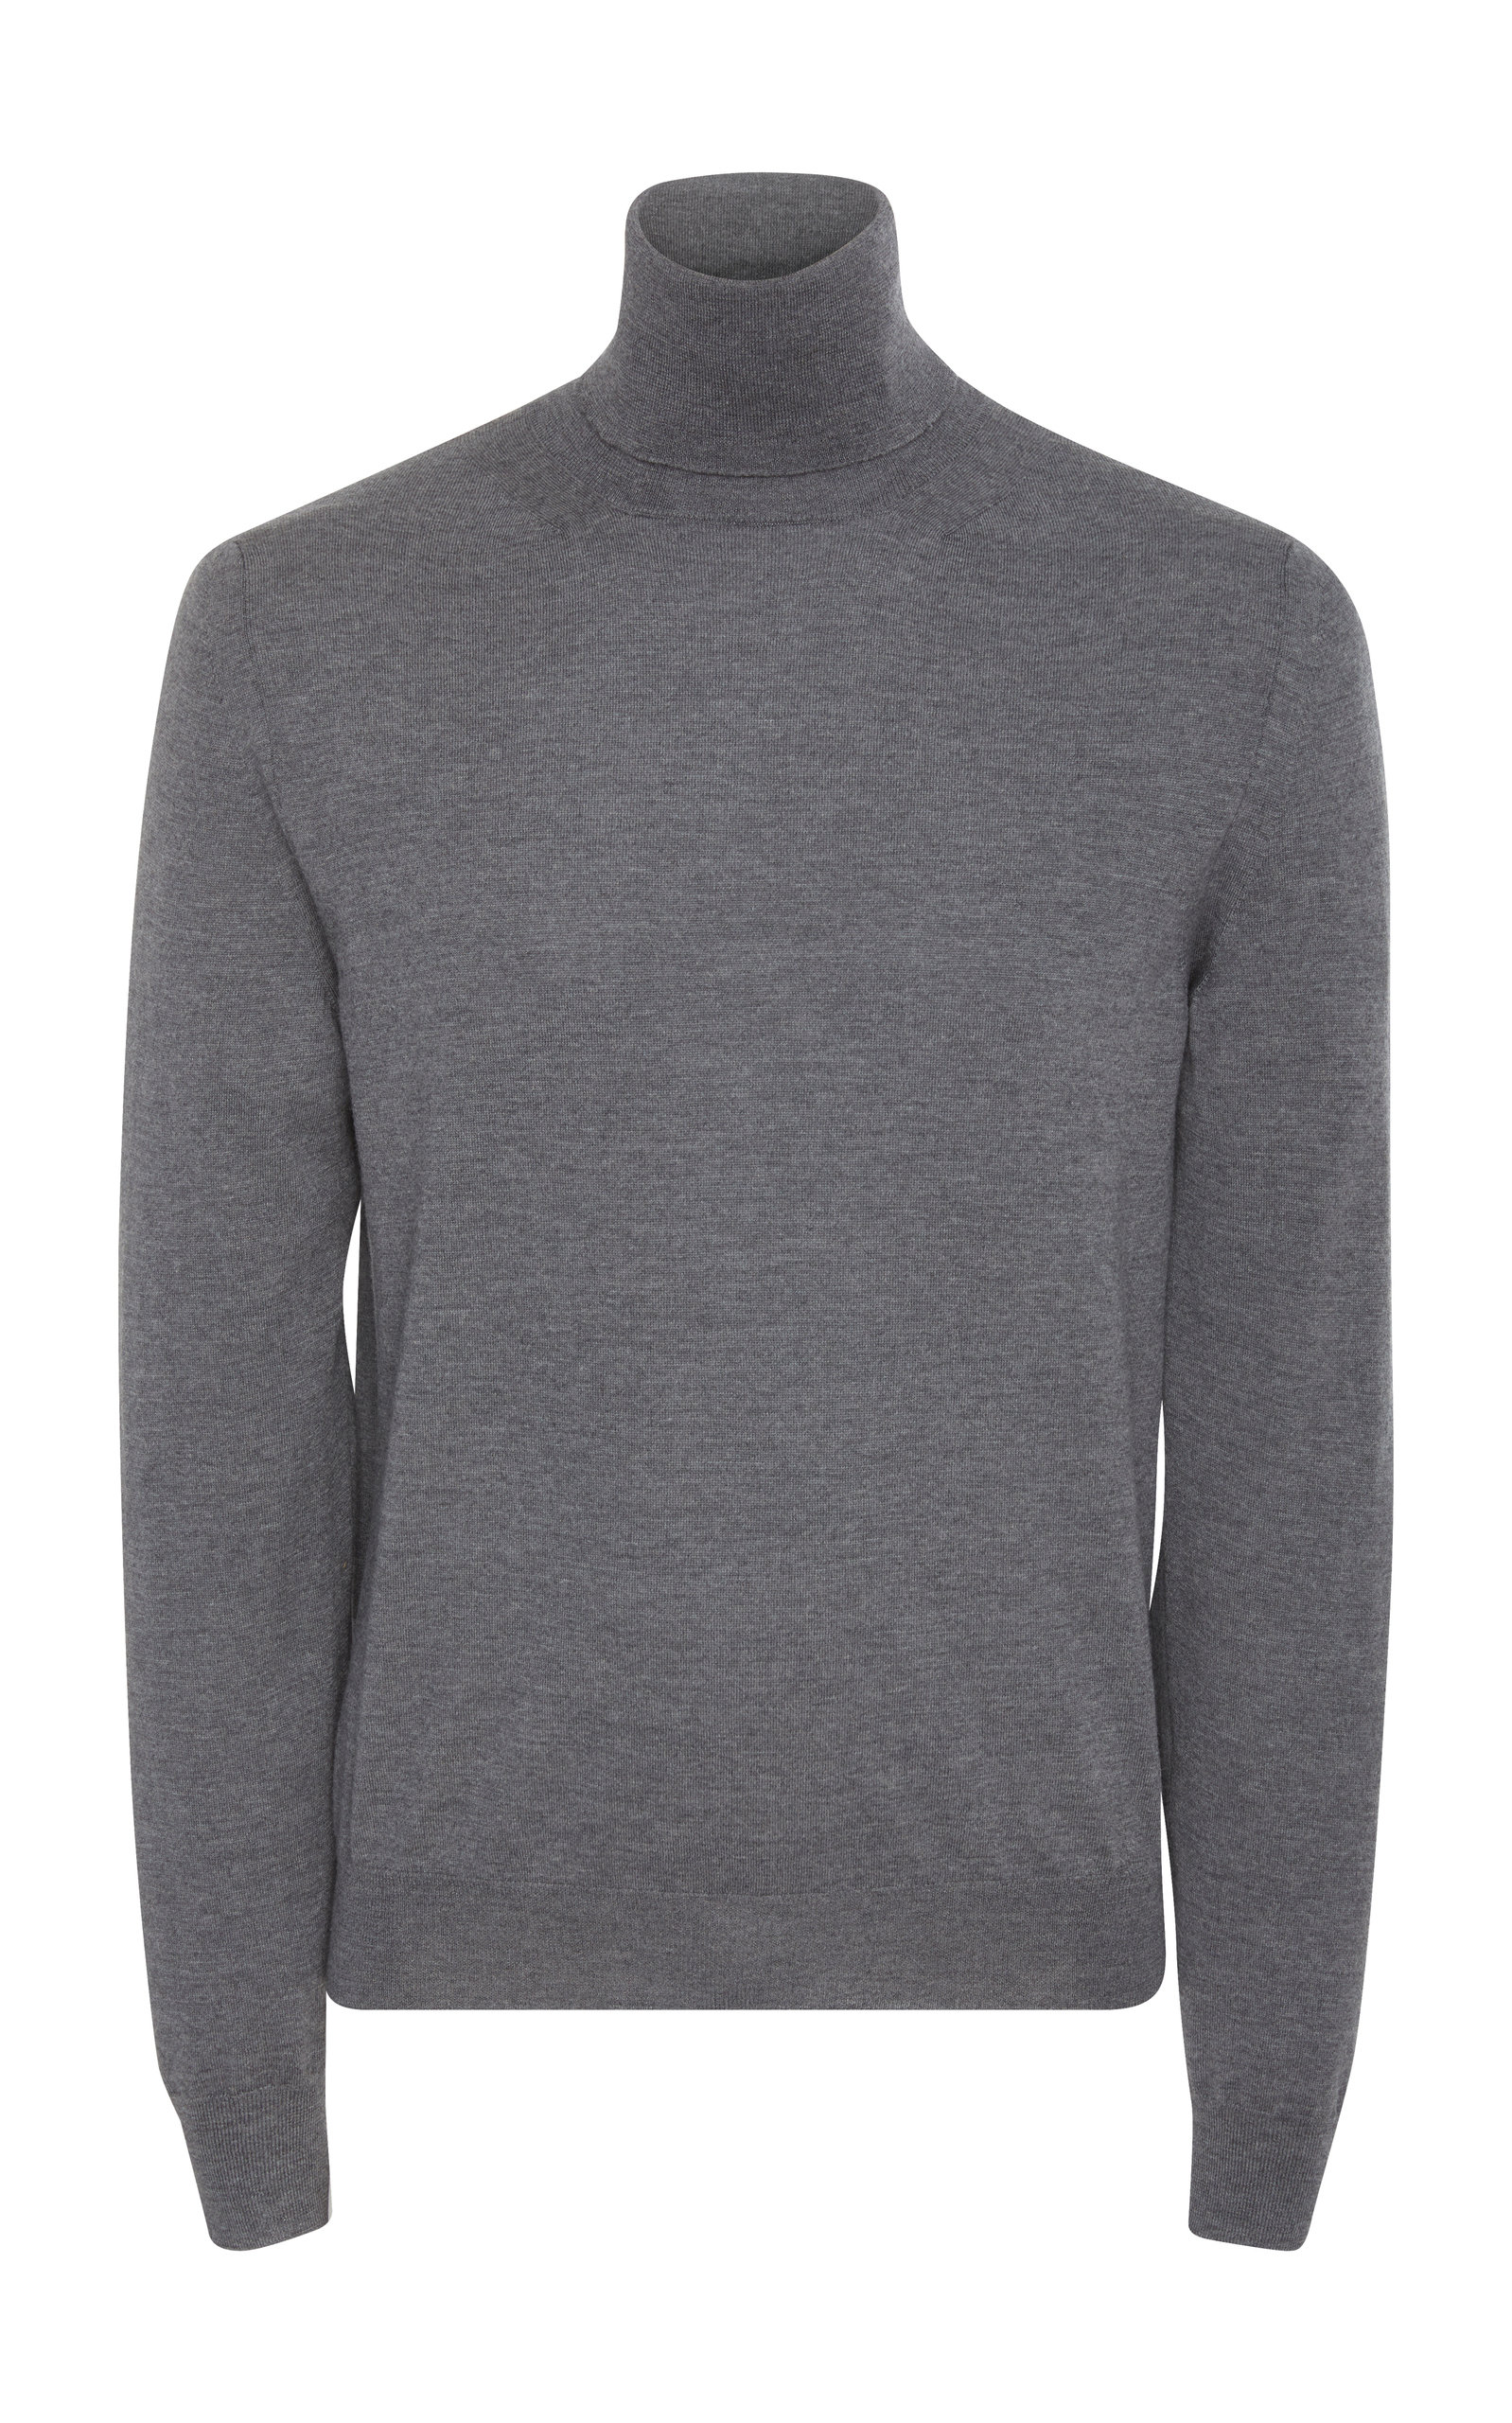 EIDOS MERINO WOOL AND CASHMERE TURTLENECK SWEATER